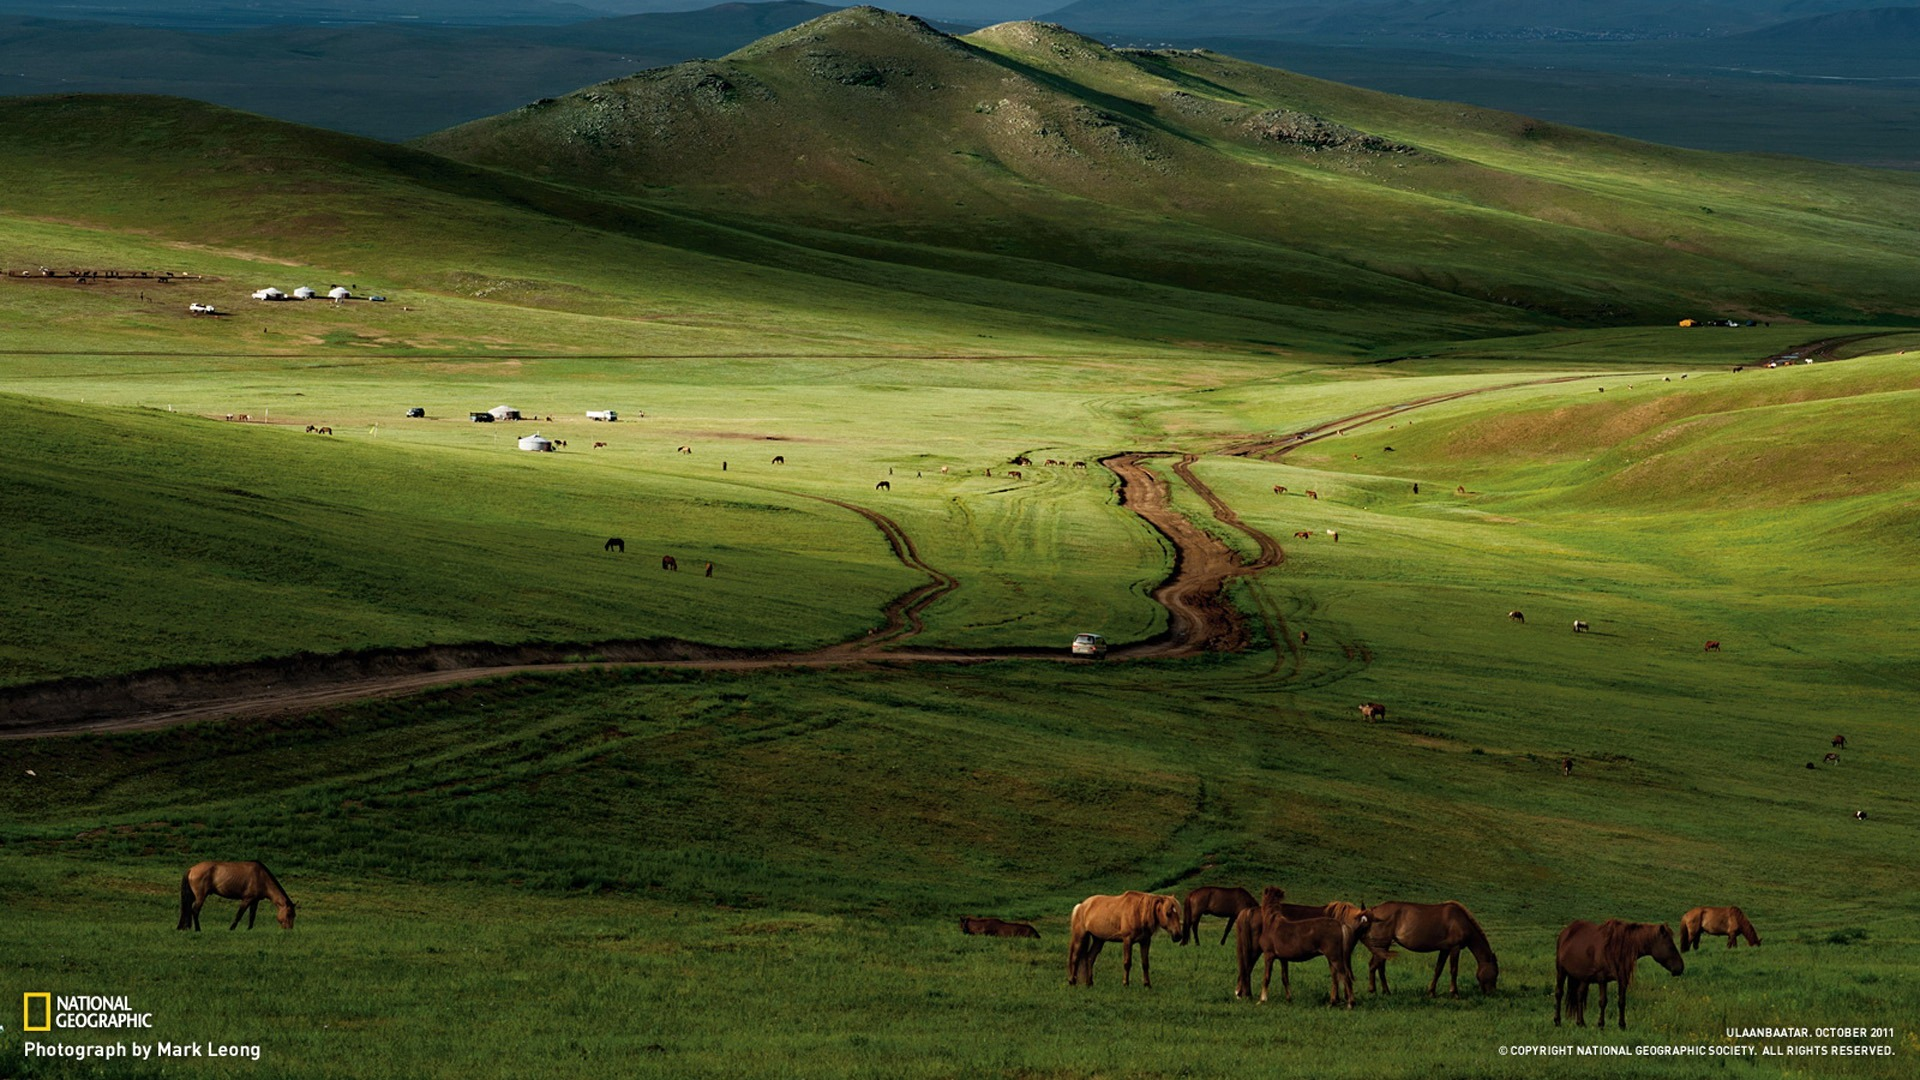 Horses Mongolian Steppe National Geographic Best Wallpapers